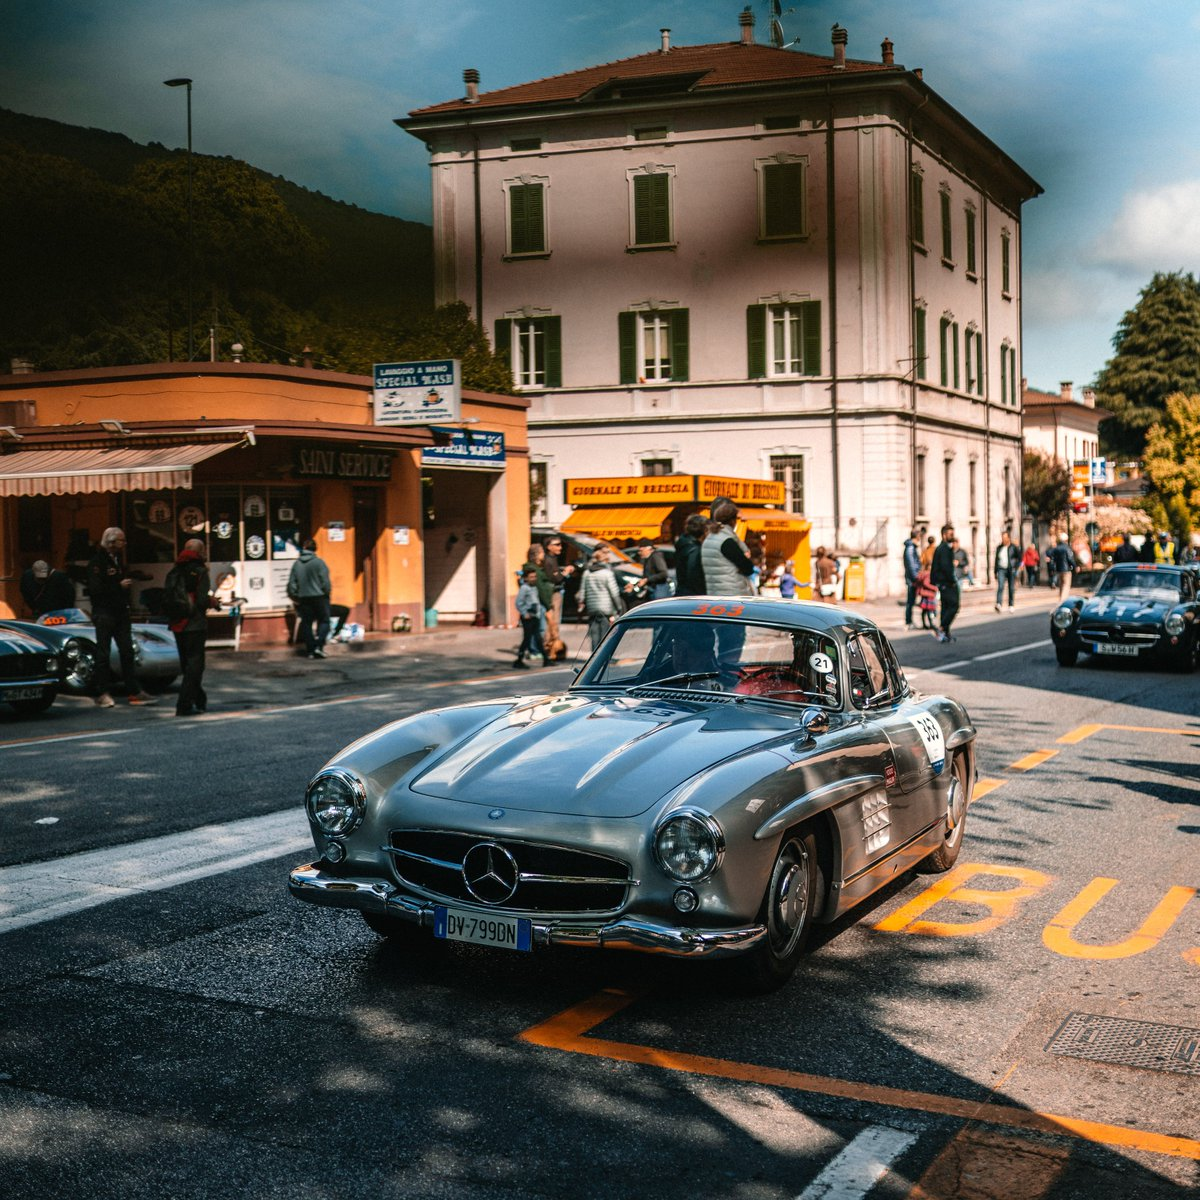 Welcome to our daily update from Italy or as we like to call it during the #MBmille: The 300 SL country 😎 #MBclassic #1000miglia #1000miglia2019